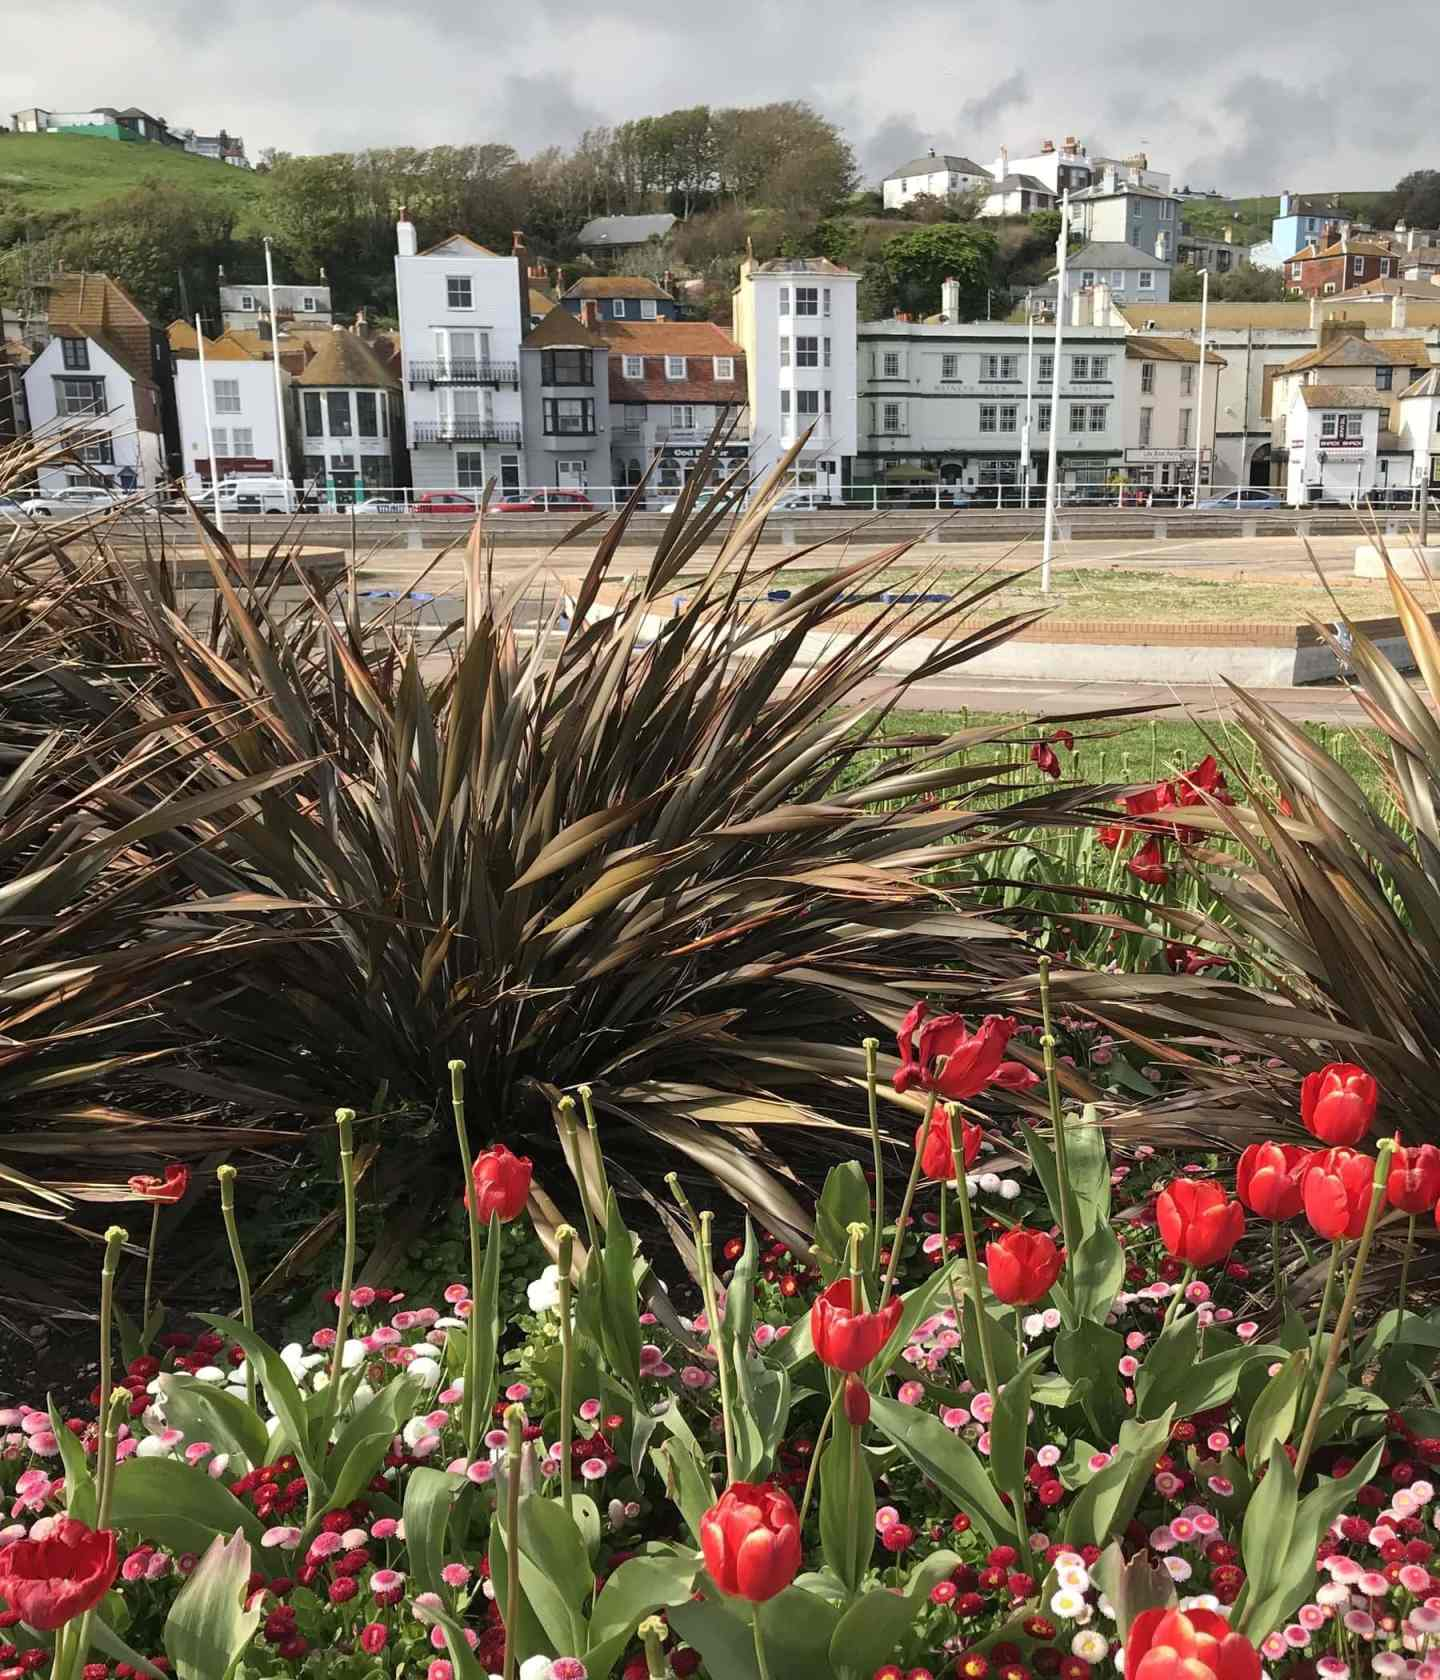 Hastings – And the Battle to keep the kids happy!